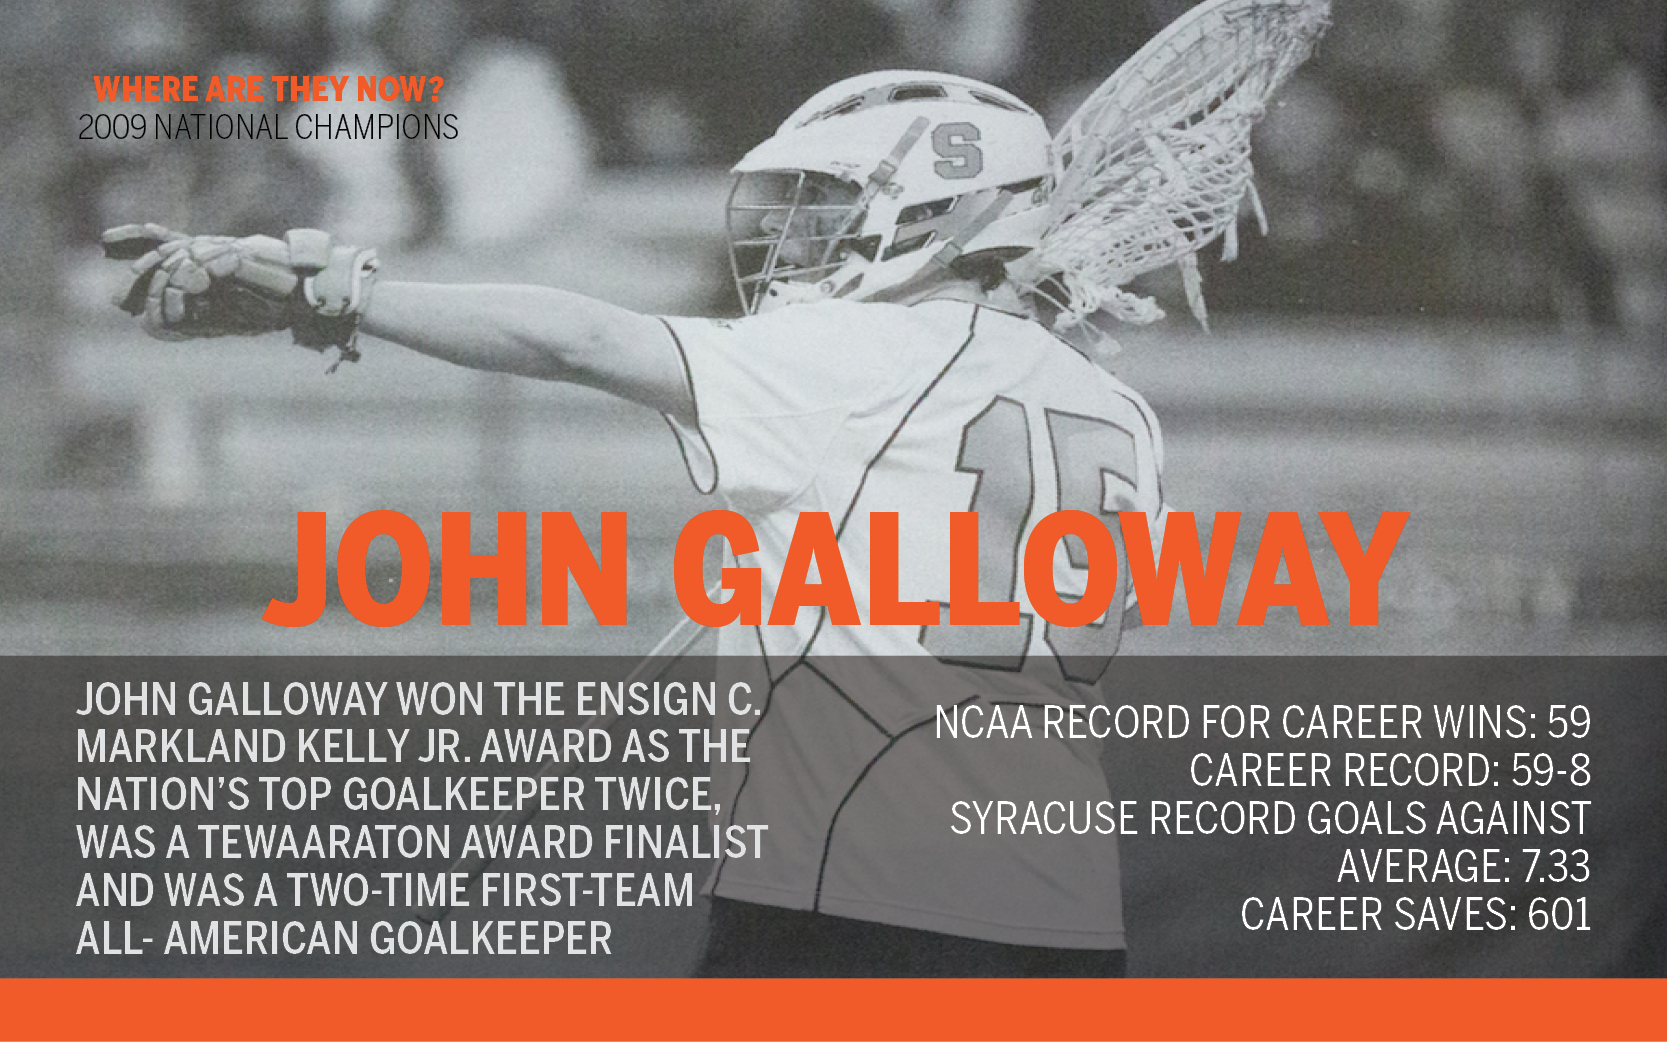 John Galloway is building Jacksonville lacrosse after 2 championships at Syracuse